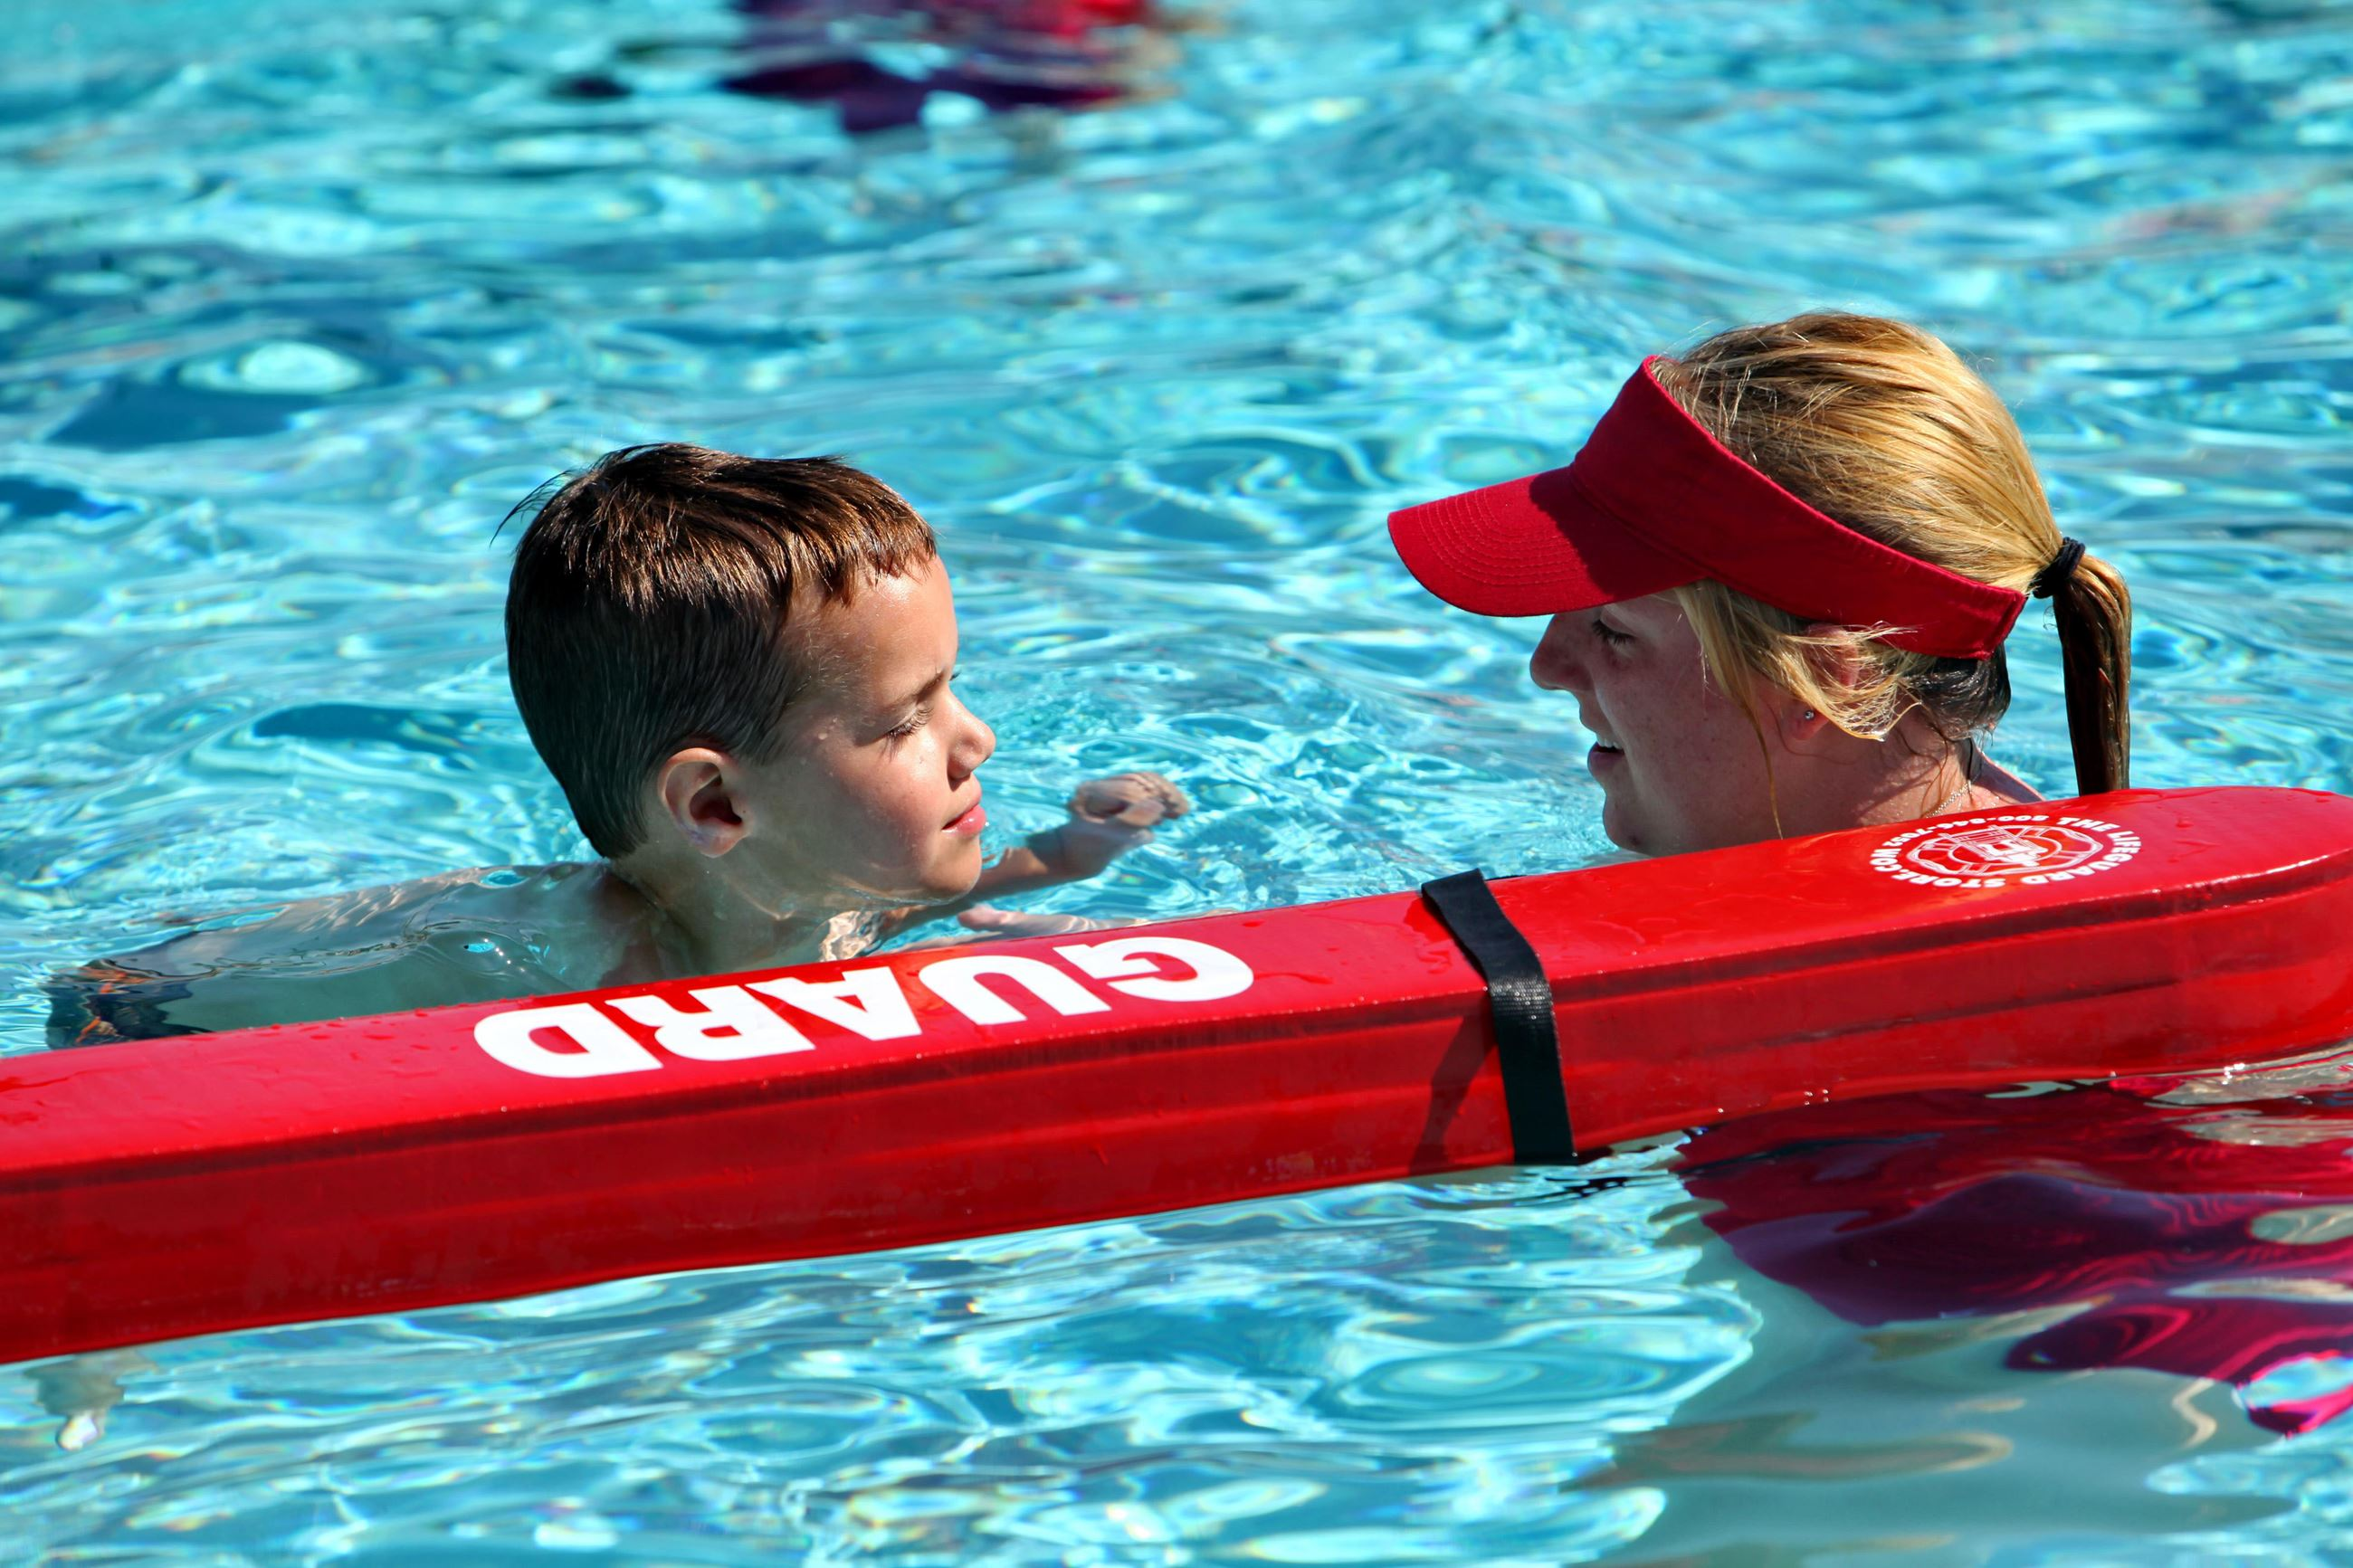 Swim instructor helping child learn to swim